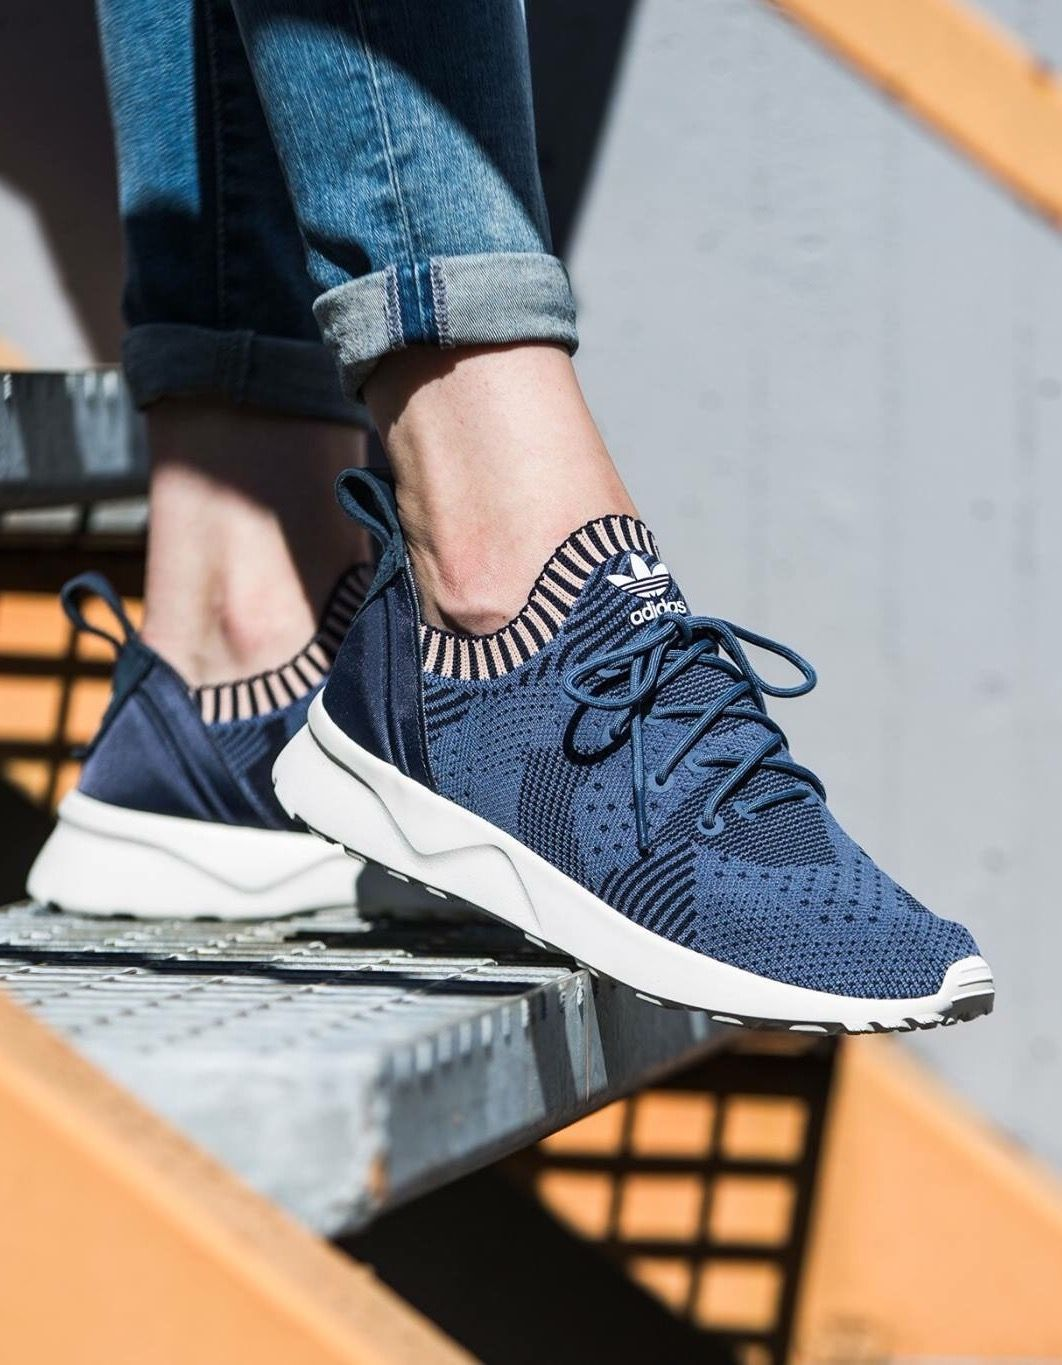 sports shoes f7c3d f85e3 adidas Originals ZX Flux ADV - Adidas Shoes for Woman - amzn.to 2gzvdJS Mens  New Years Eve Outfit